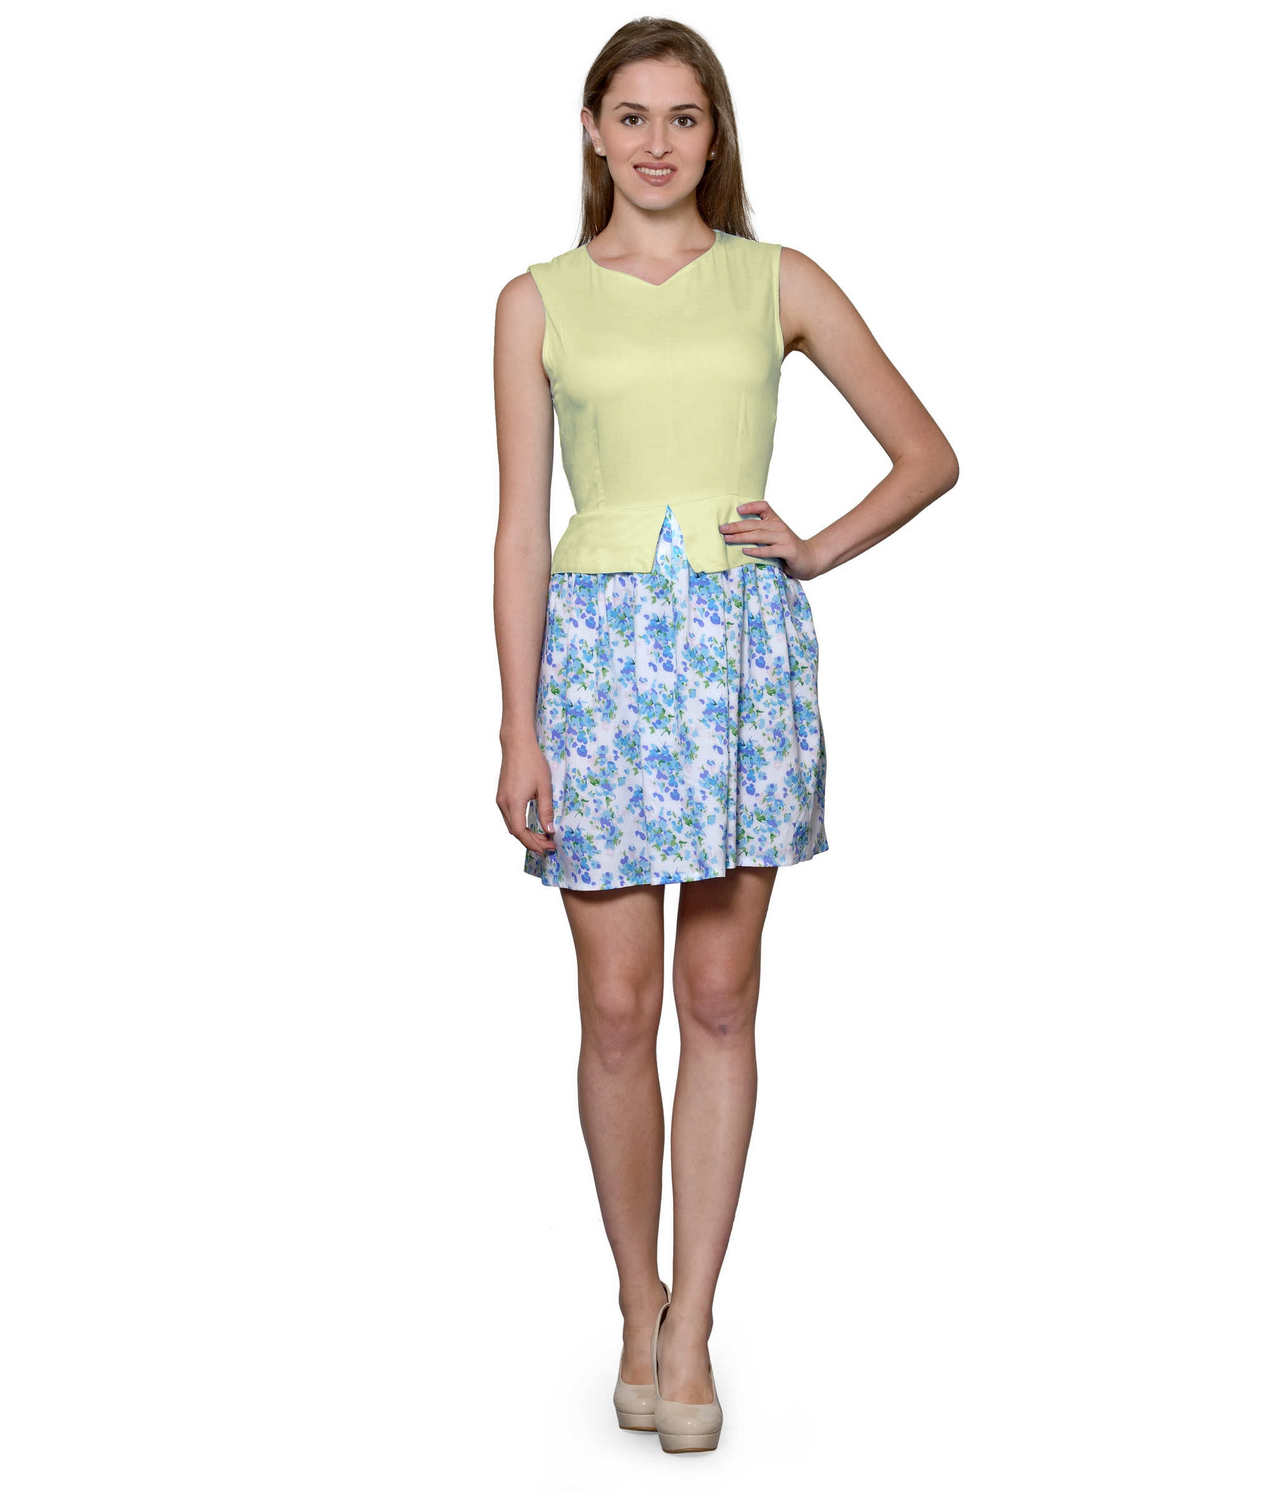 Top and Skirt Style Cocktail Mini Dress in Cream:Multicolour